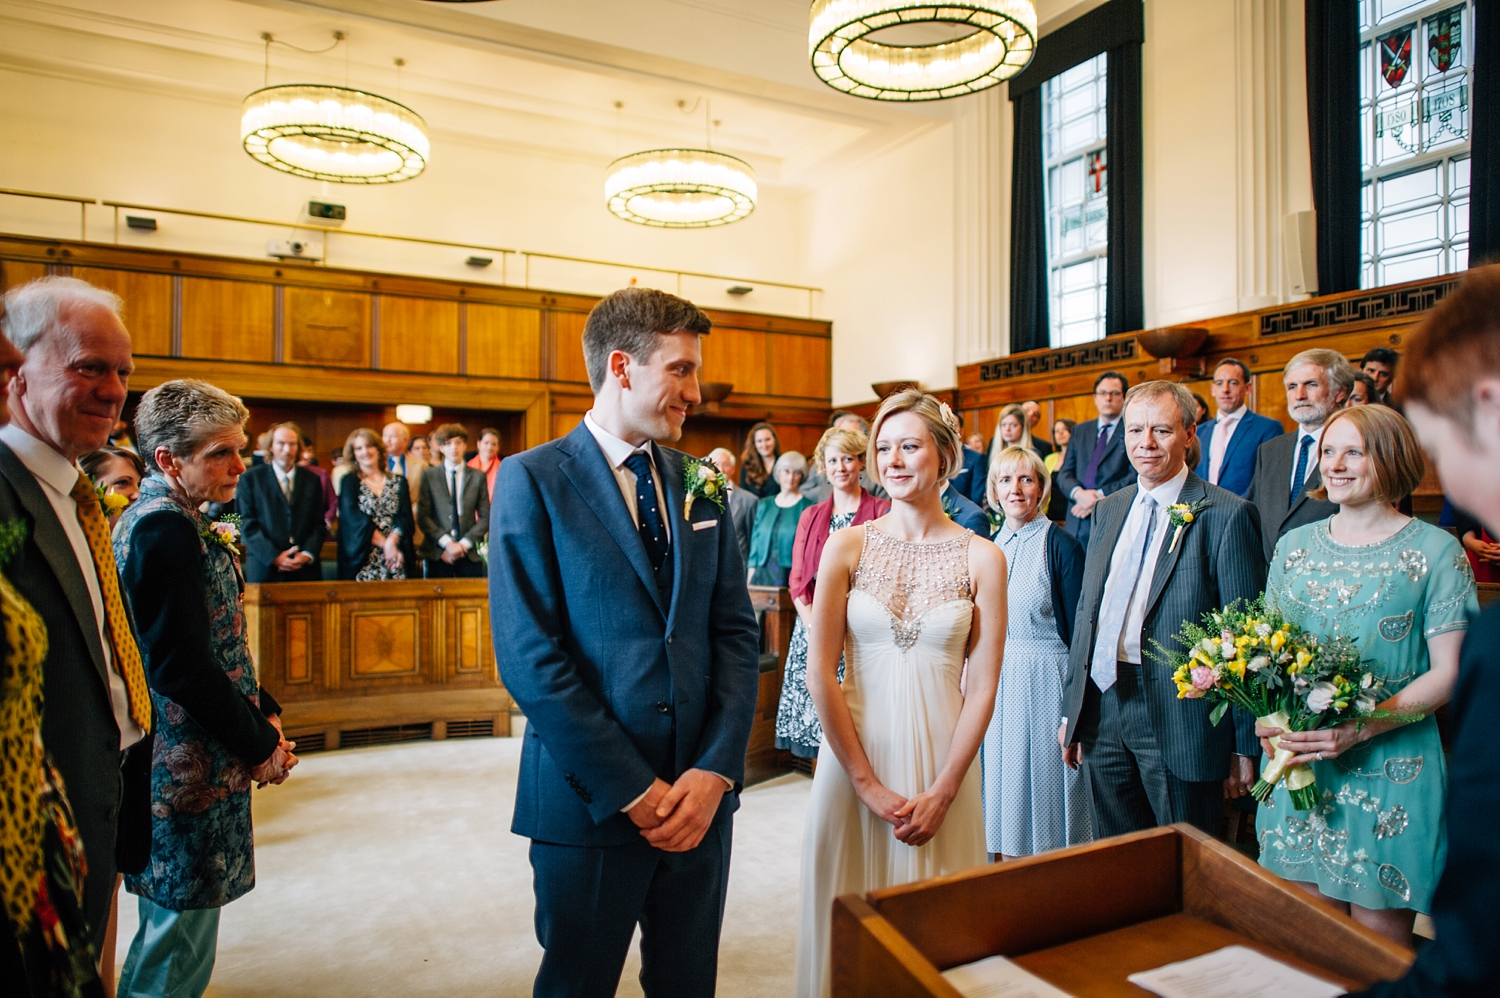 0045-lisa-devine-alternative-wedding-photography-london-hackney-dalston-london-photography-townhall-hotel.JPG